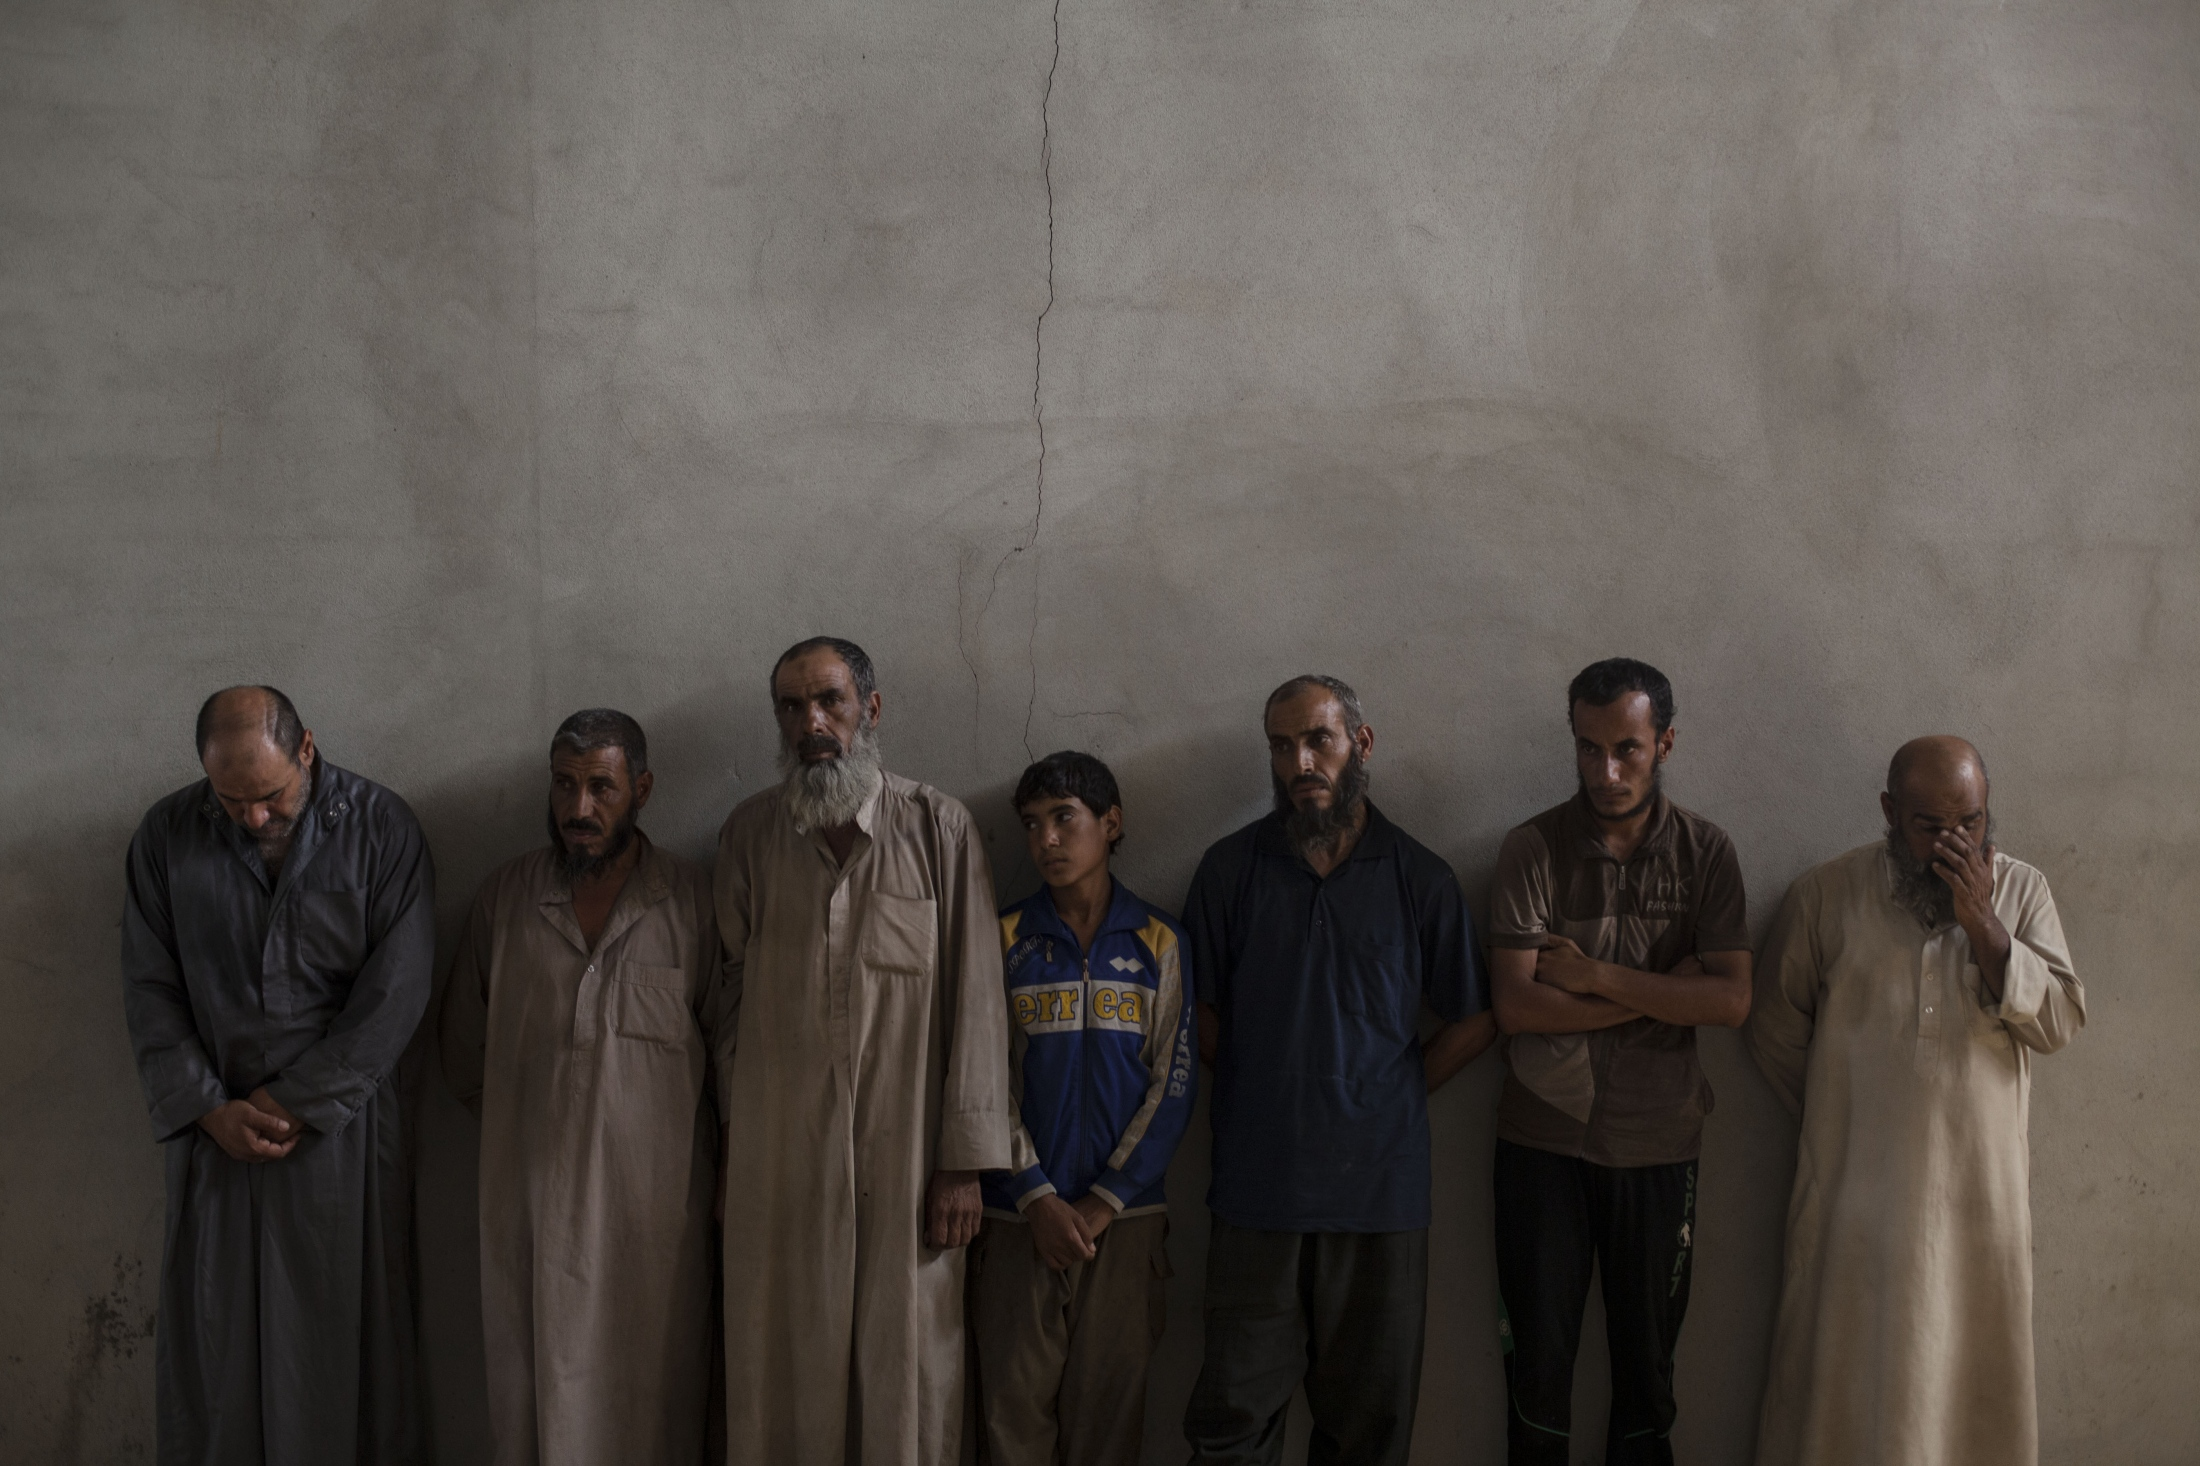 Displaced men from Hawija are lined up against a wall at a Kurdish screening center in Dibis, Tuesday, Oct. 3, 2017. They are brought to the center for a screening process before being moved to camps for displaced people in the Kurdish region of Iraq.